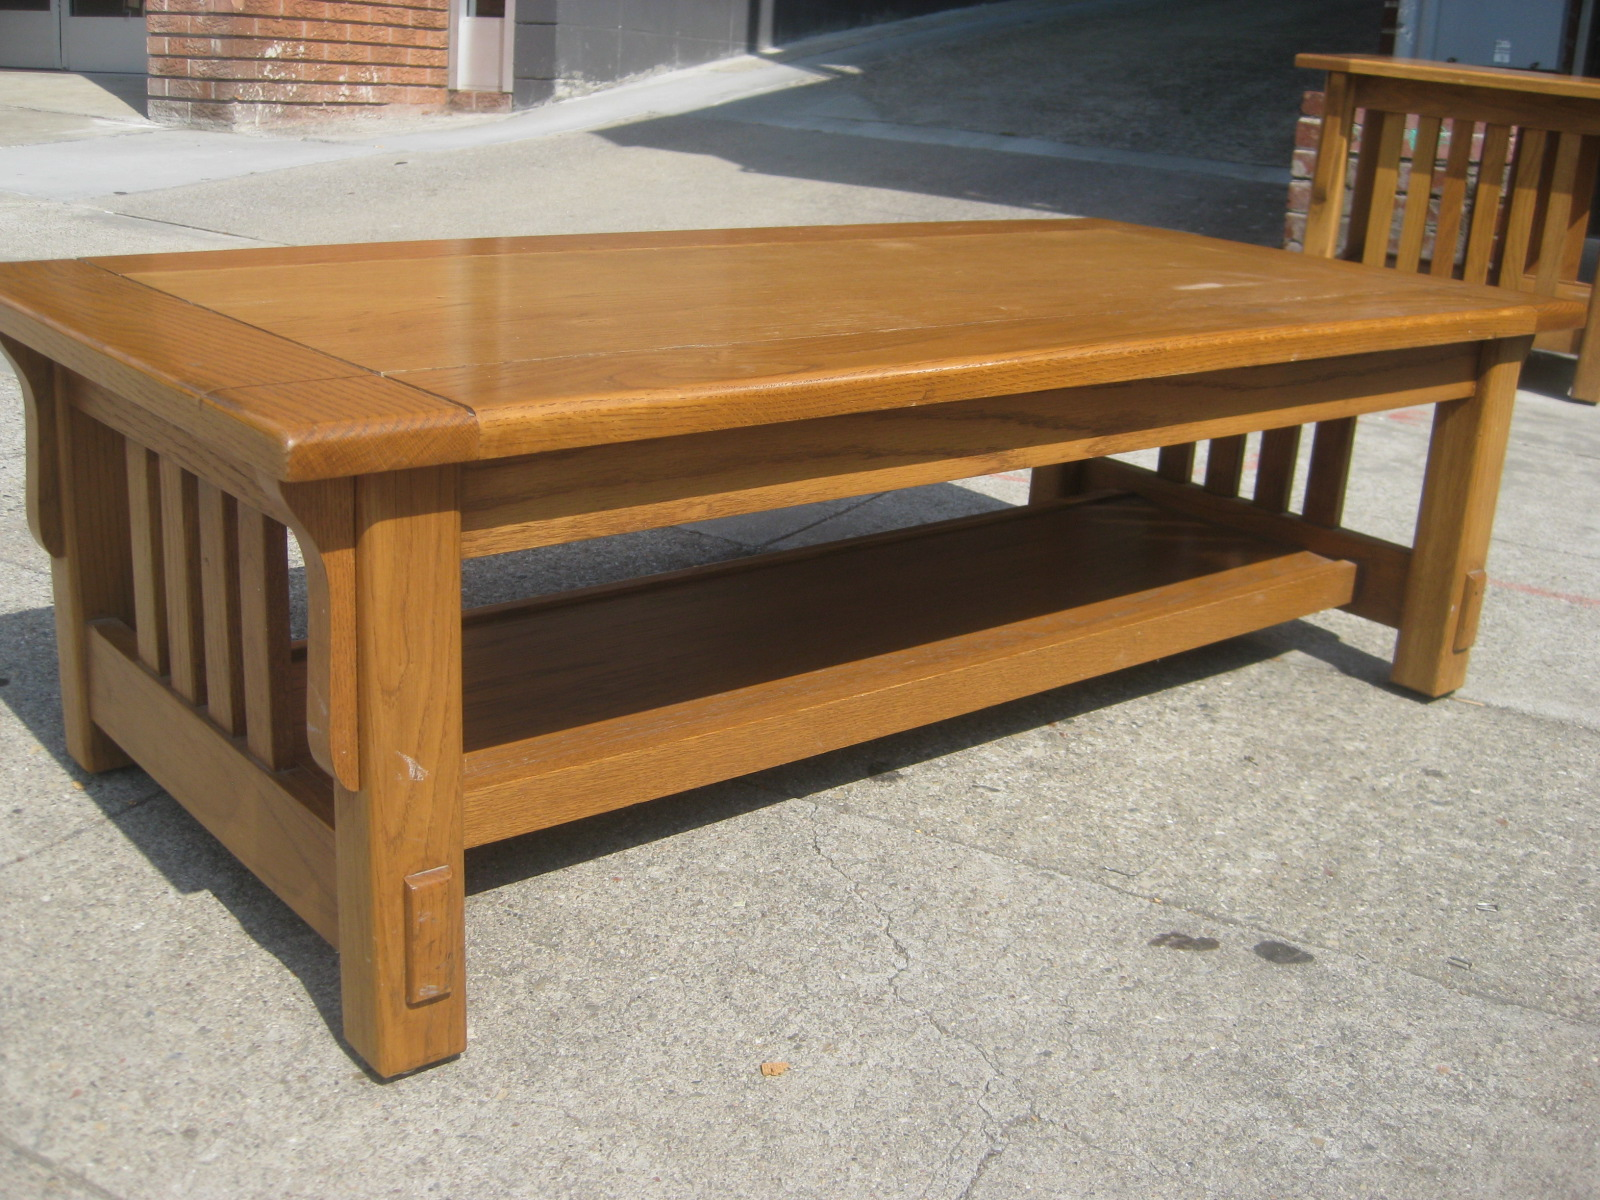 Uhuru Furniture Collectibles Sold Mission Style Coffee Table 75